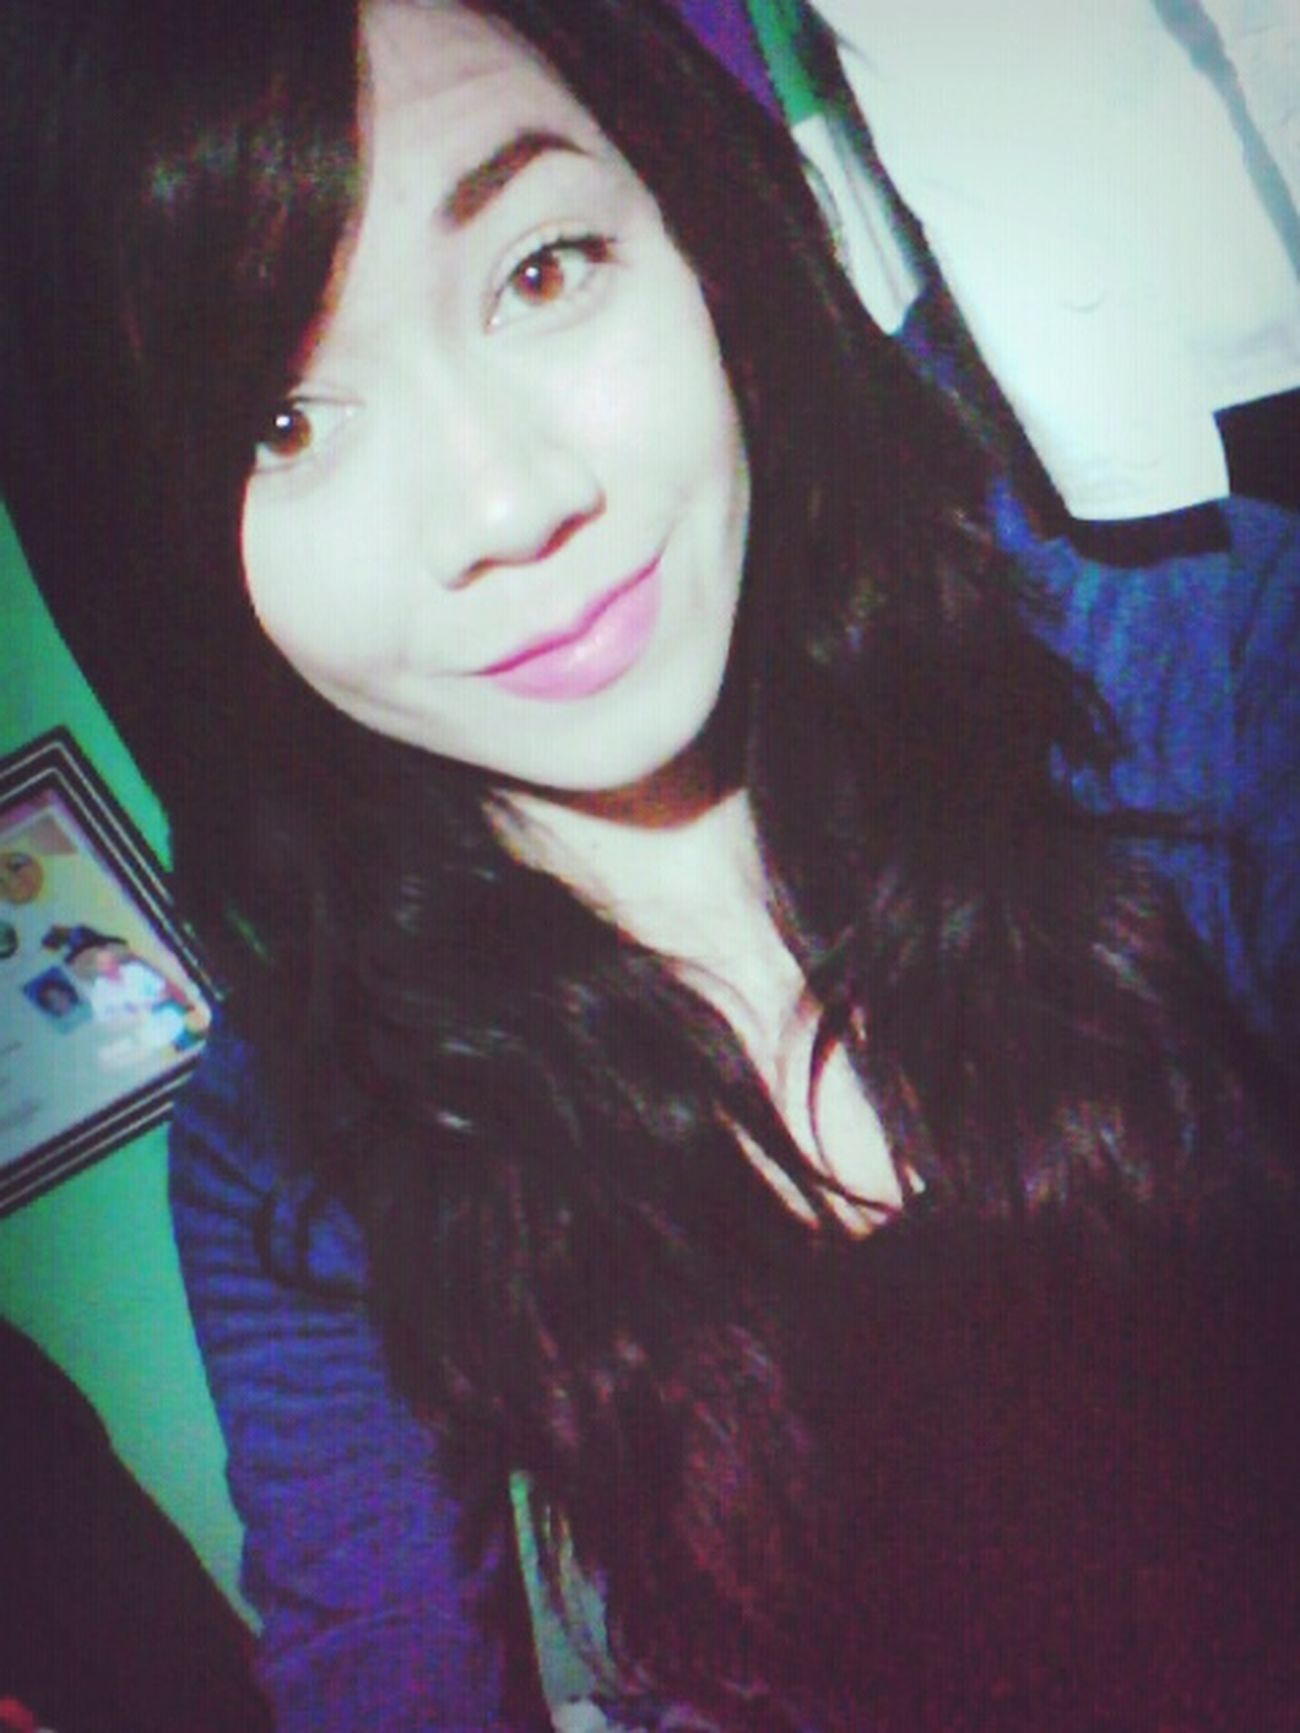 Catita Chula Ojitos *--* I Love My Boyfriend ♥ Enormemente Feli! That's Me Selfie ♥ Hello World ✌ Te Amo Chris❤